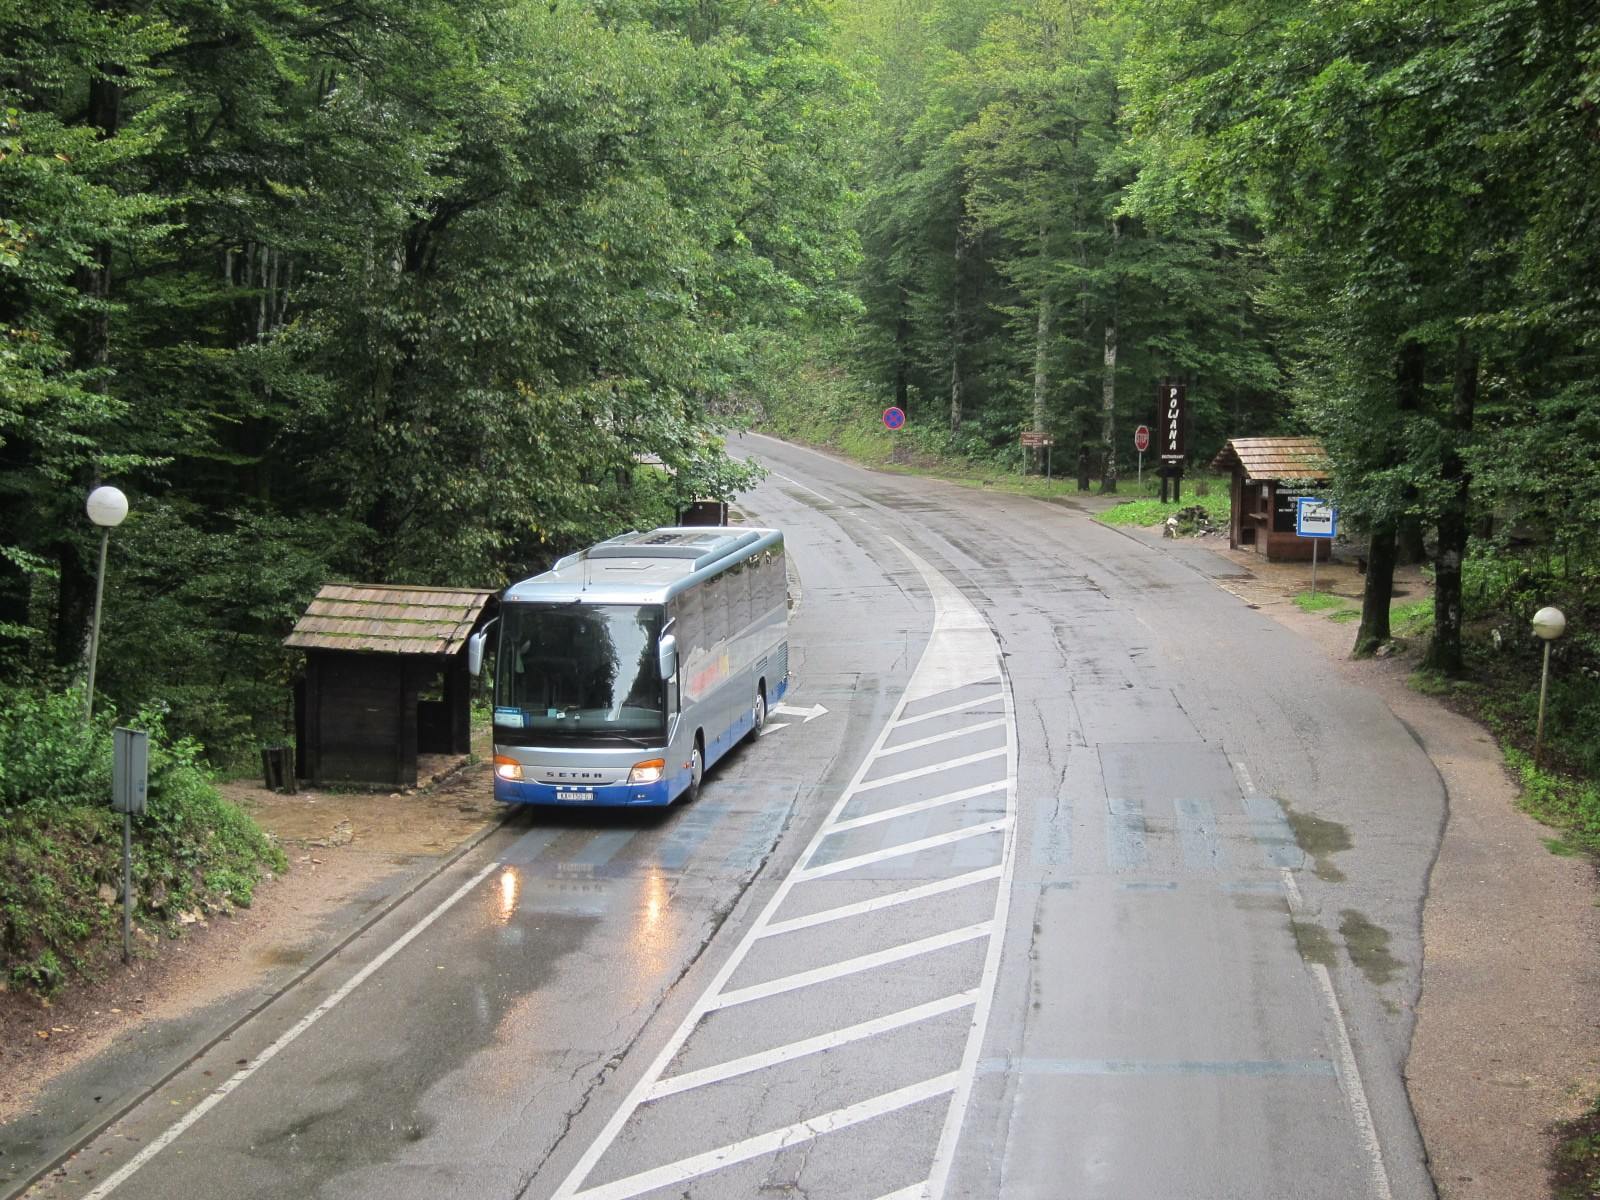 Getting to the Plitvice Lakes National Park